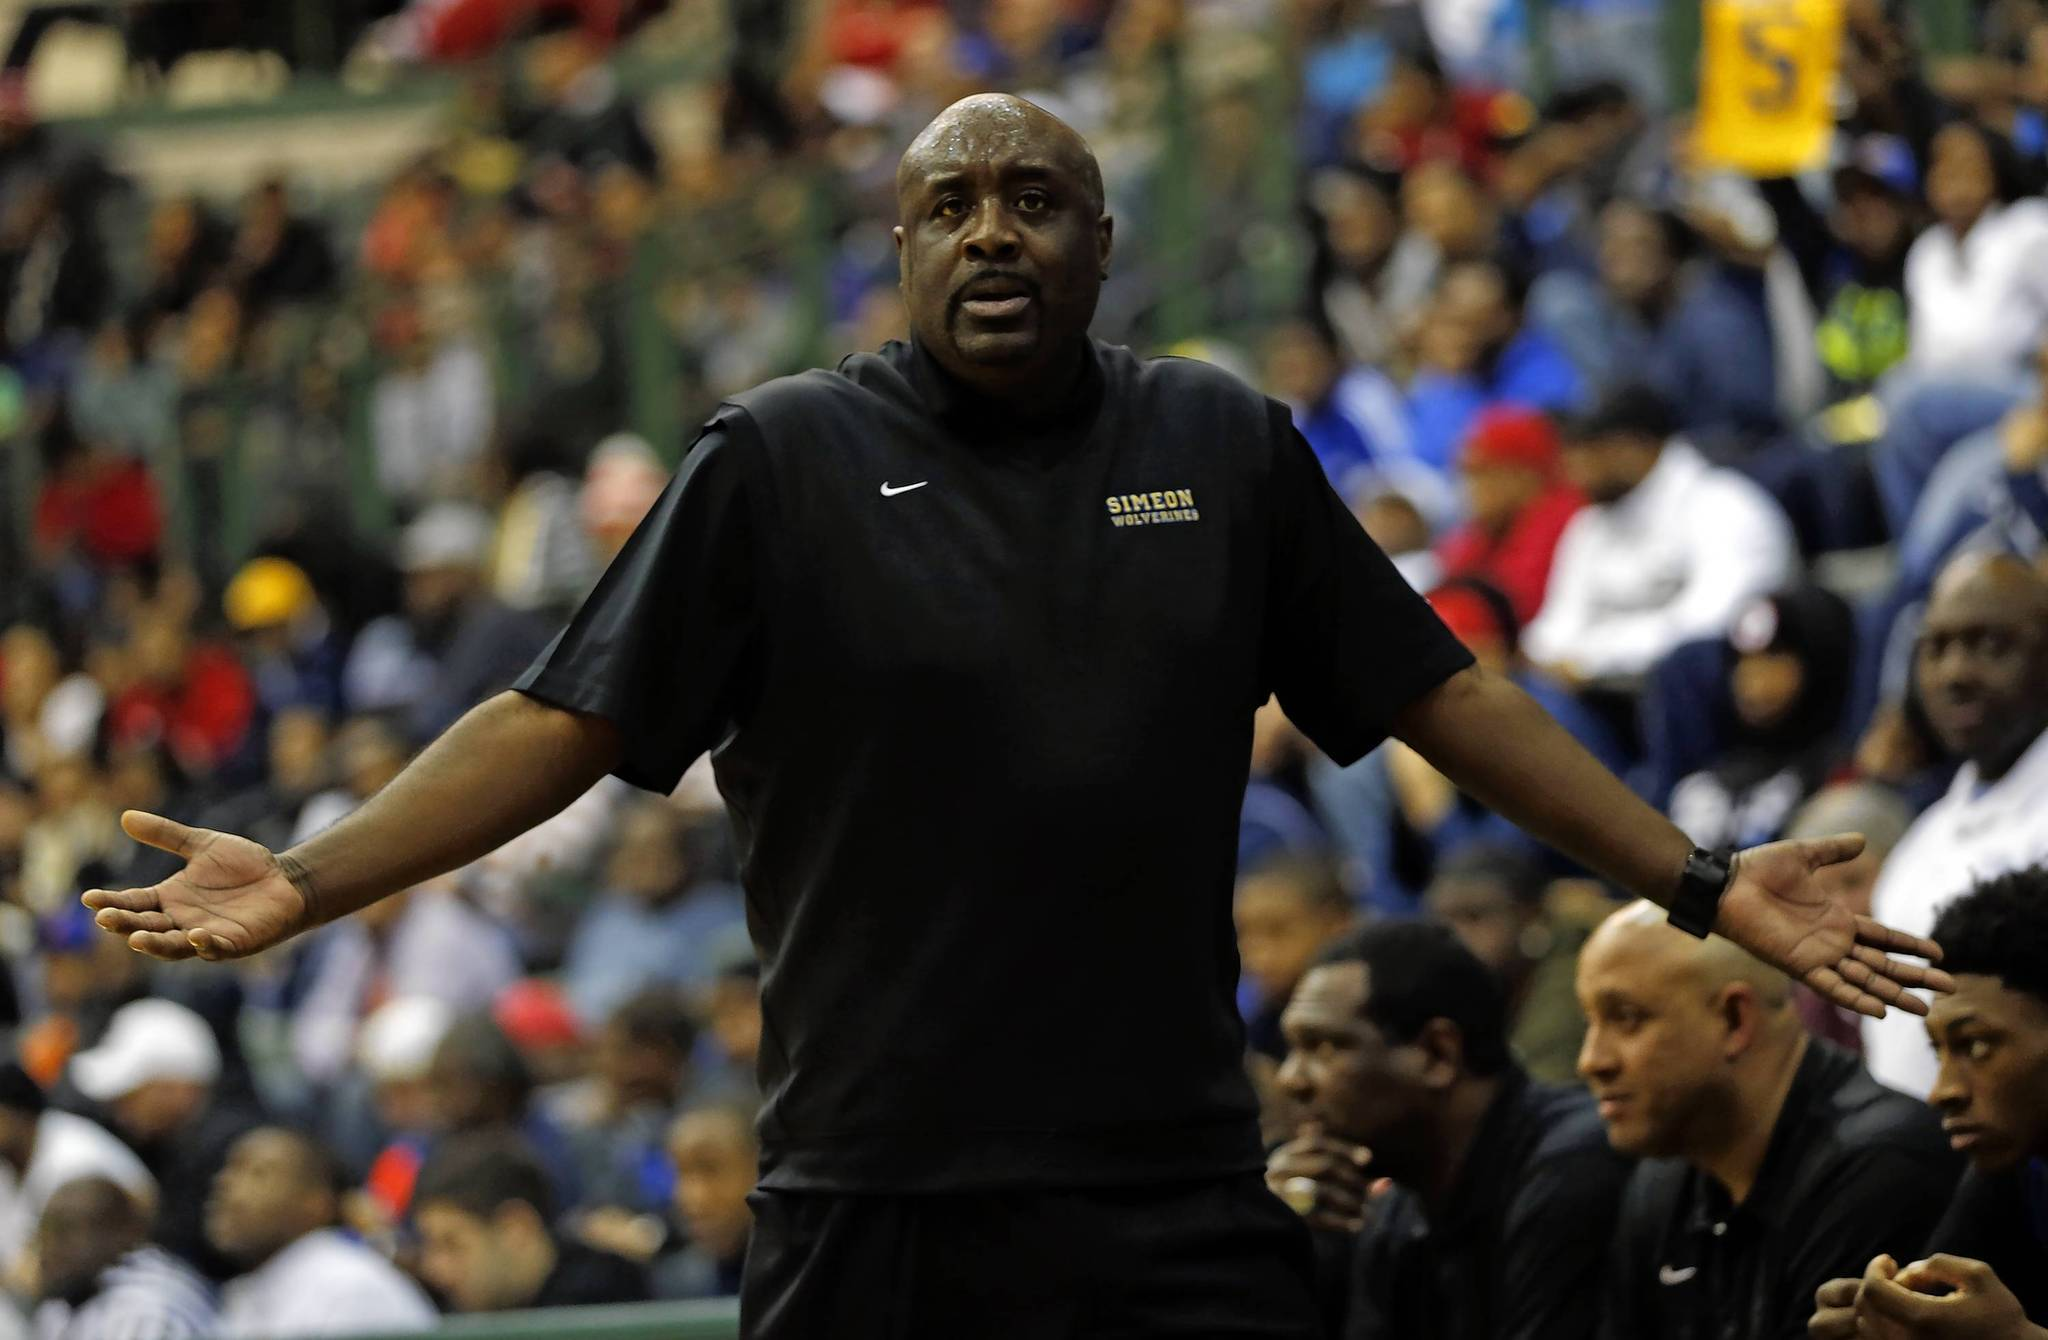 Simeon head coach Robert Smith reacts to an official's call in the fourth quarter.